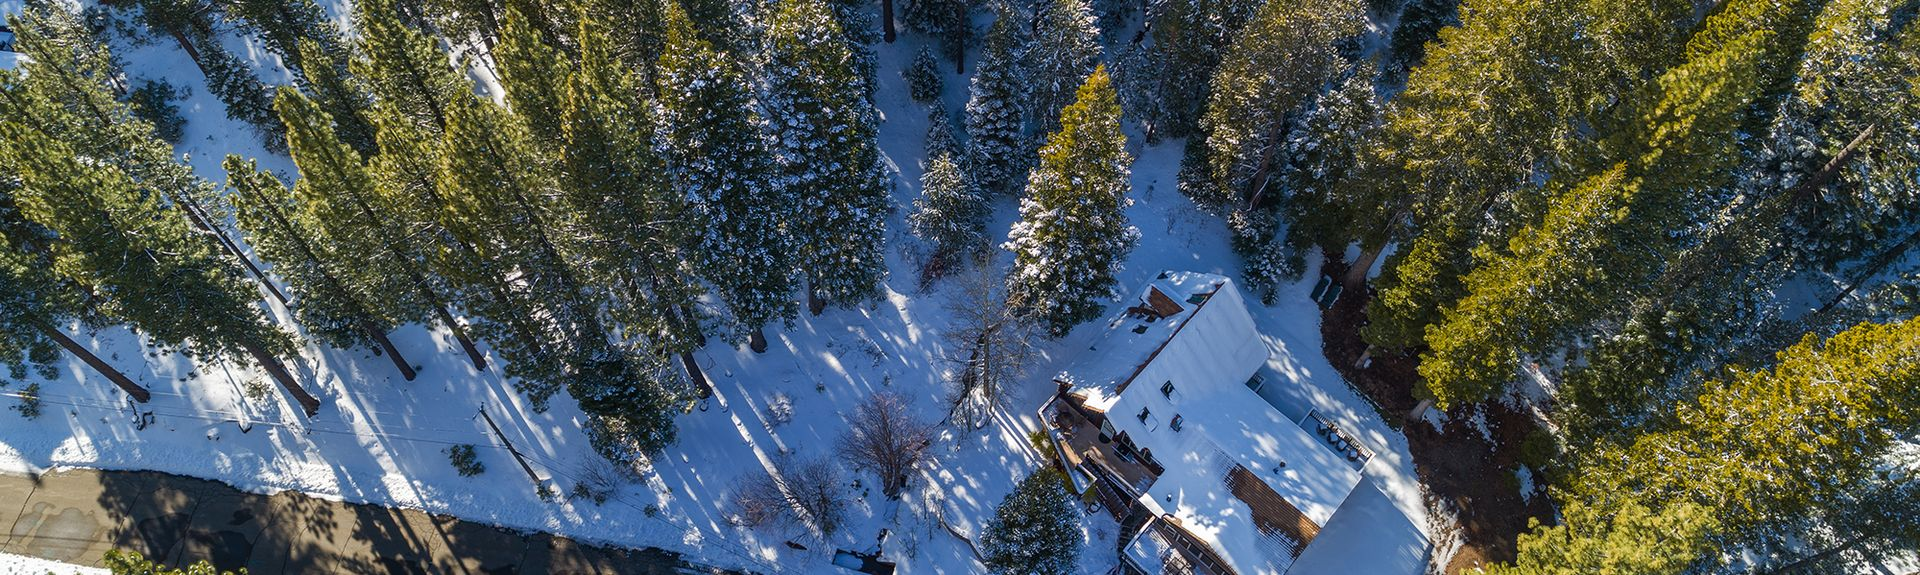 Homewood Mountain Resort, Homewood, Californië, Verenigde Staten